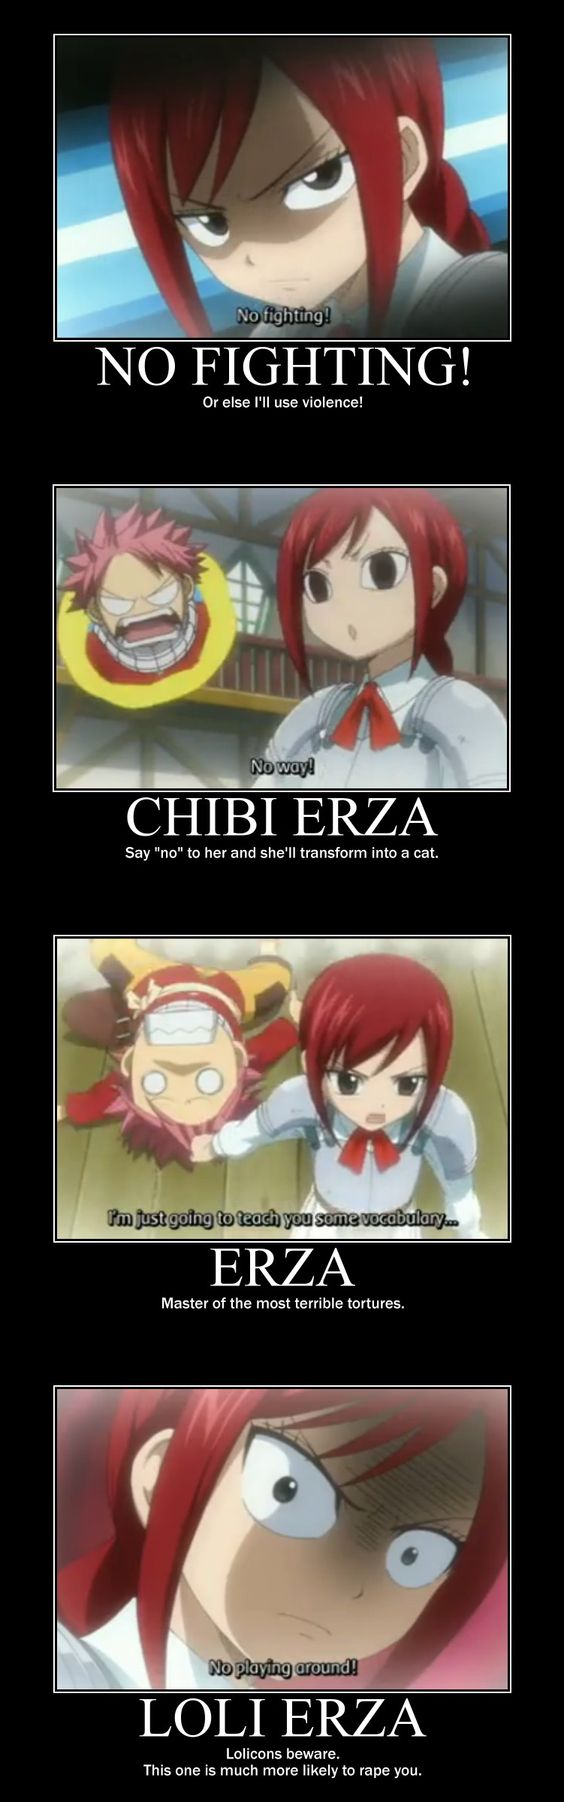 lol Erza there being so mean to u